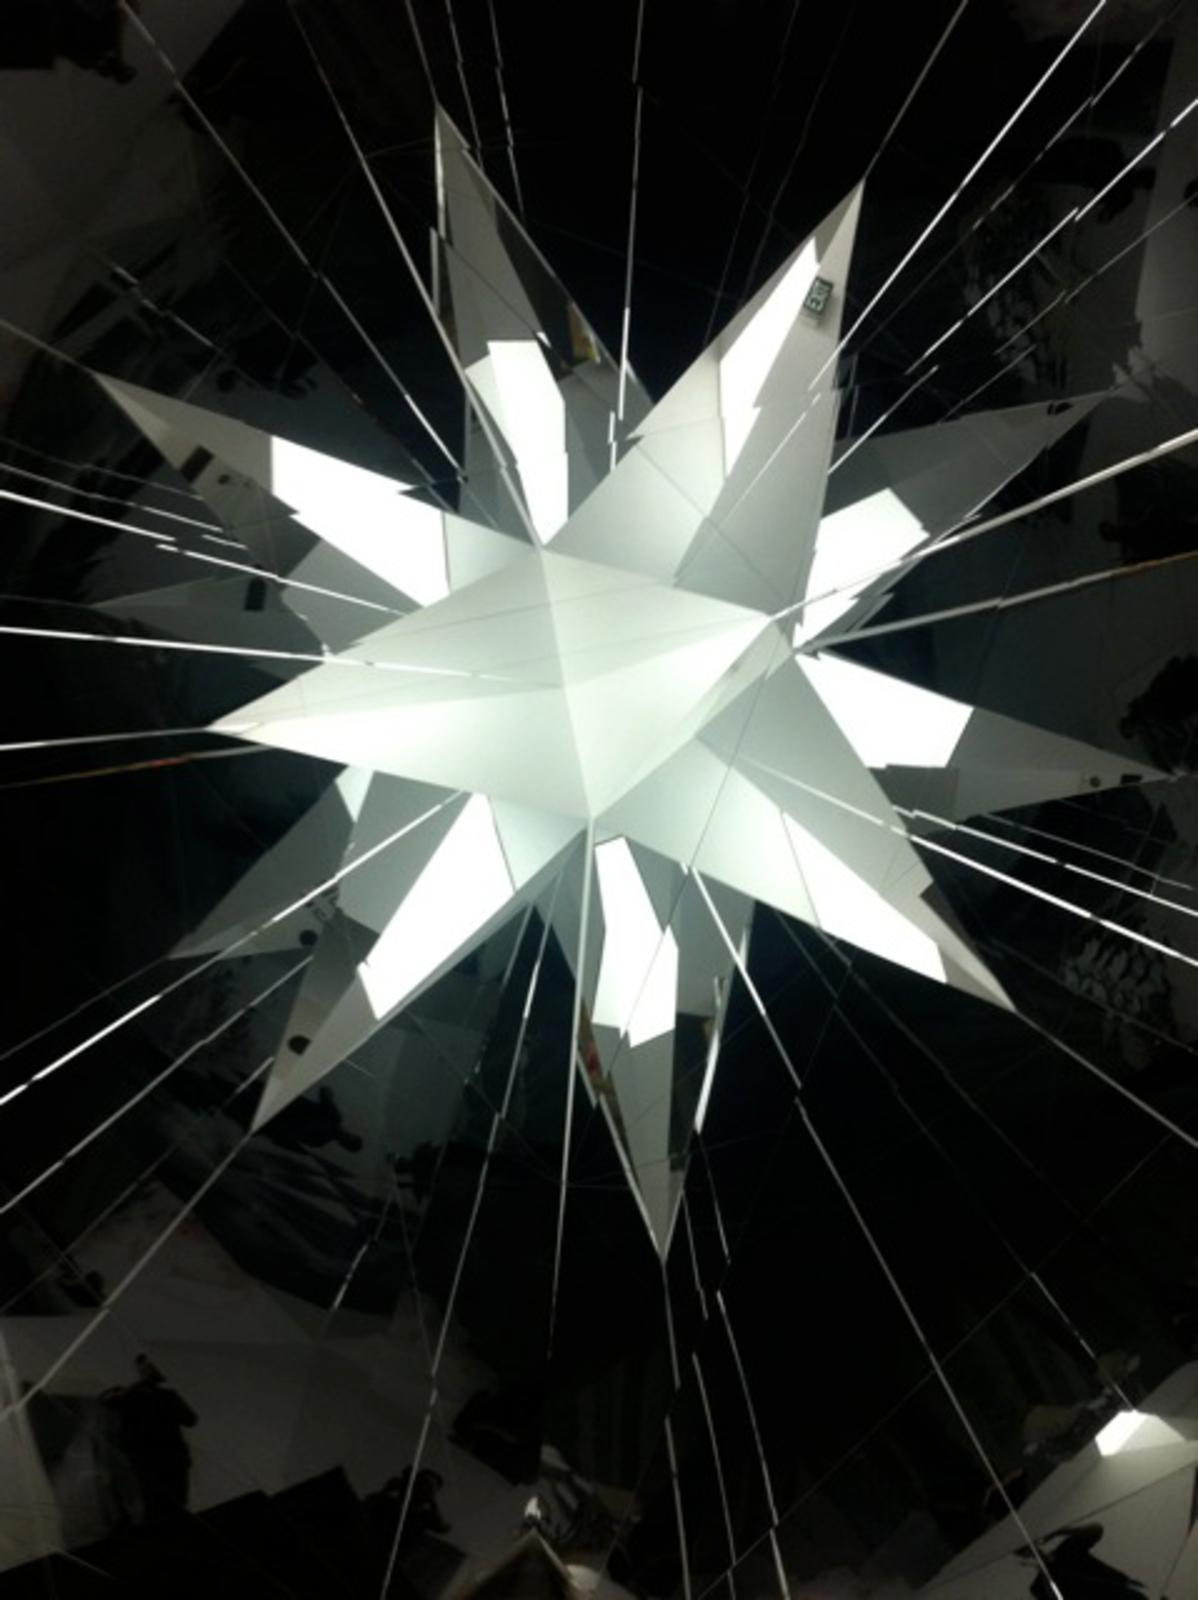 Your Star House Artwork Studio Olafur Eliasson